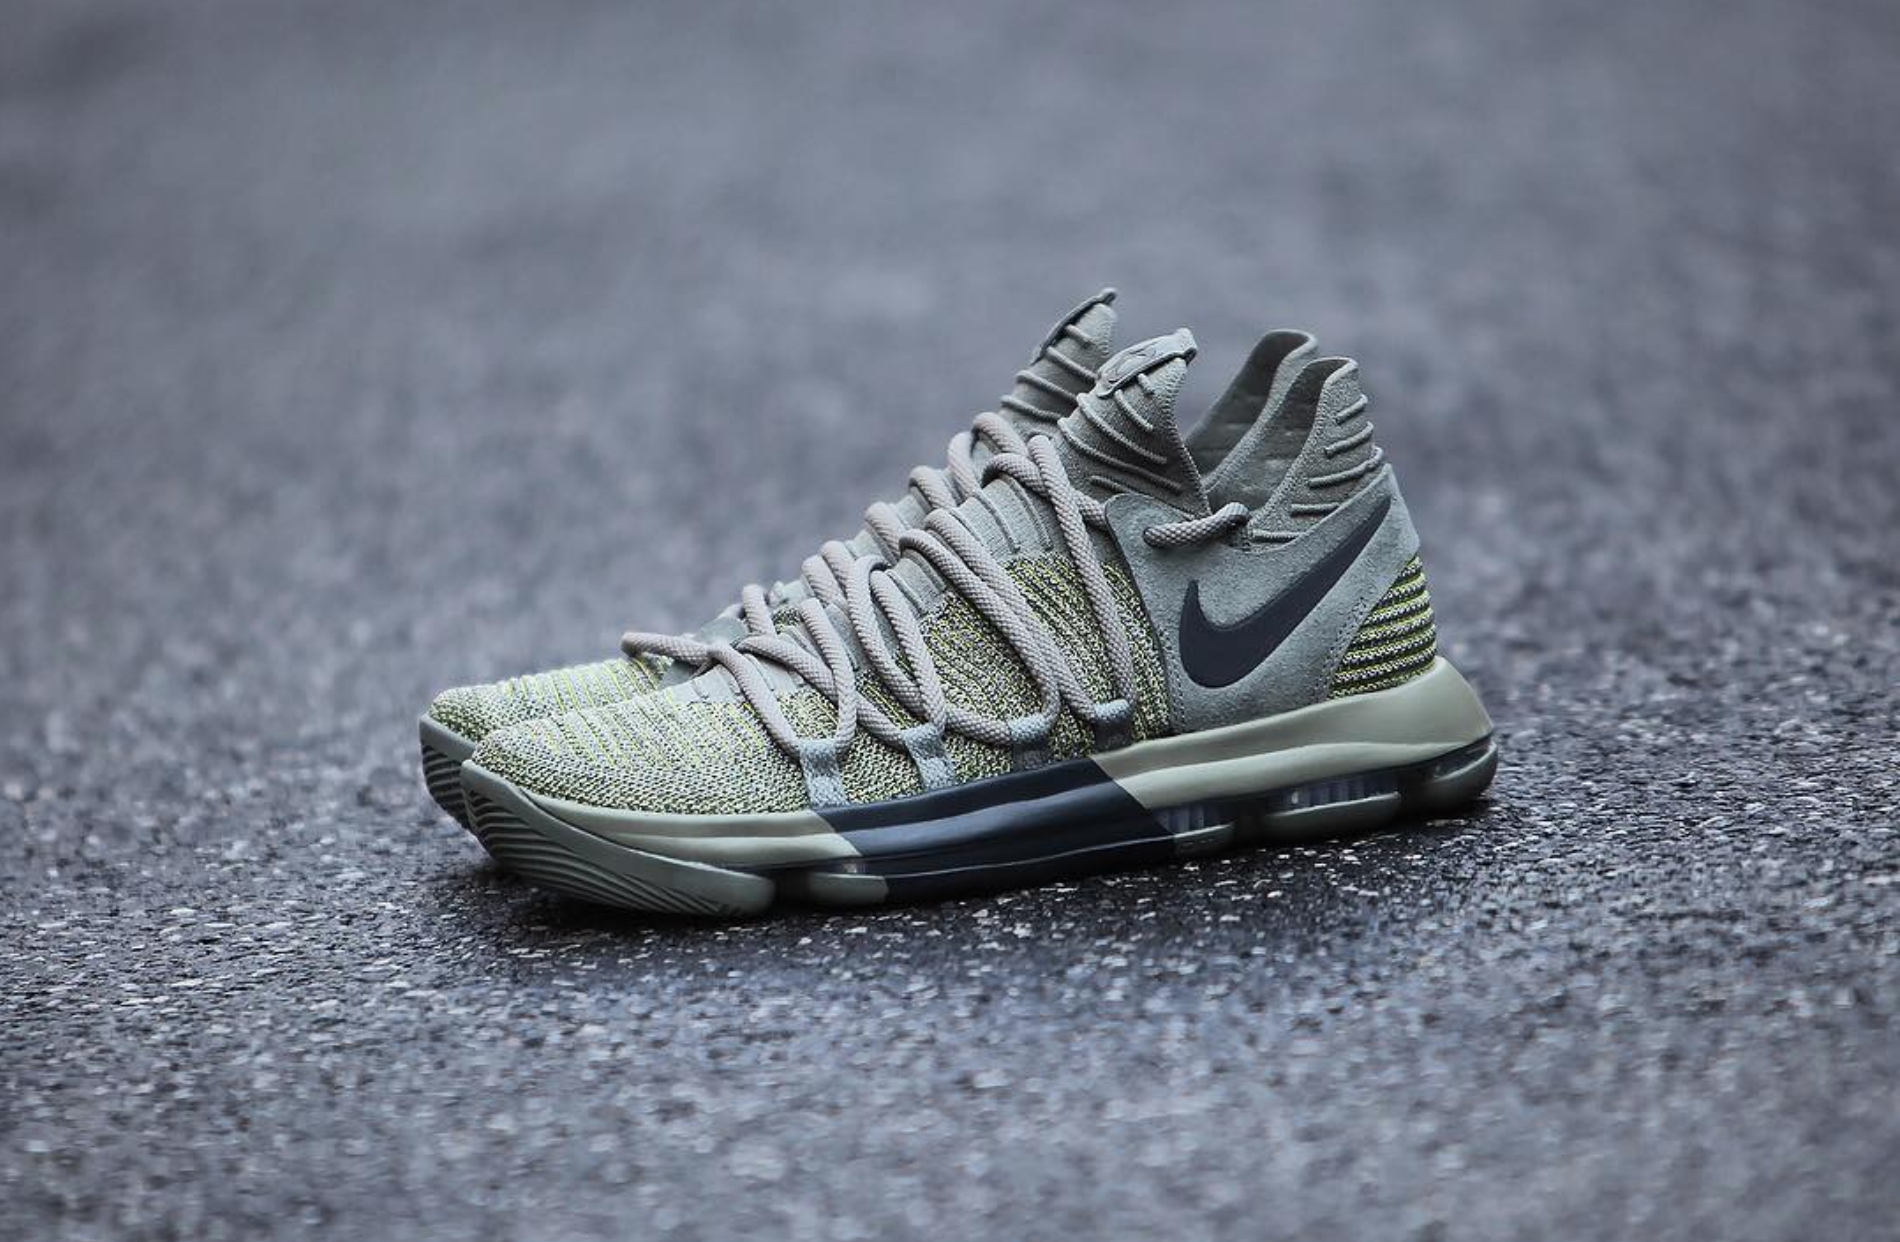 nike kd 10 limited edition 12 - WearTesters